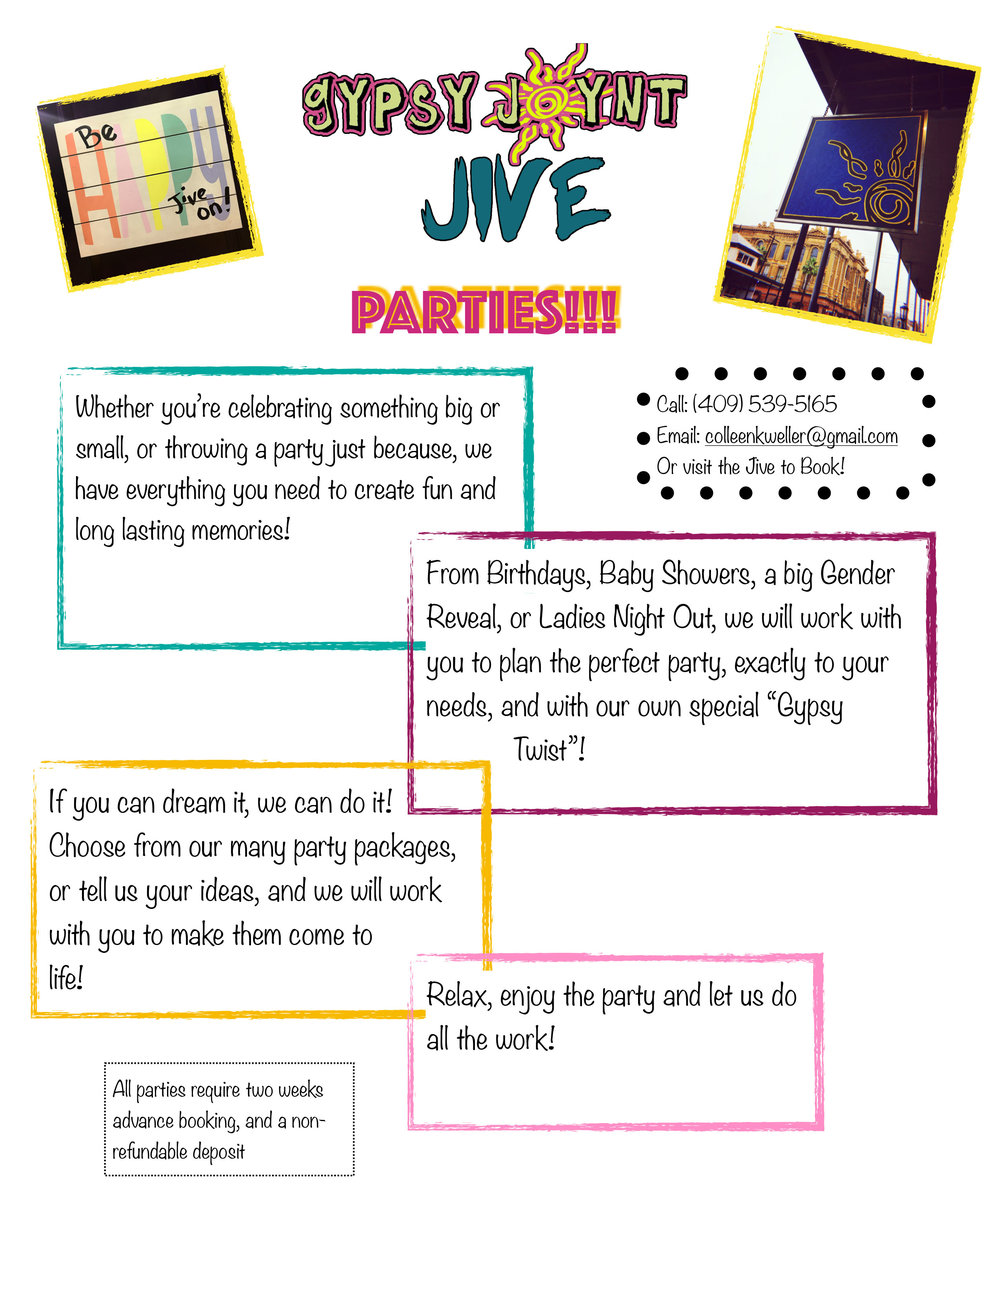 JIVE PARTY MENU (WEB) PDF-1.jpg